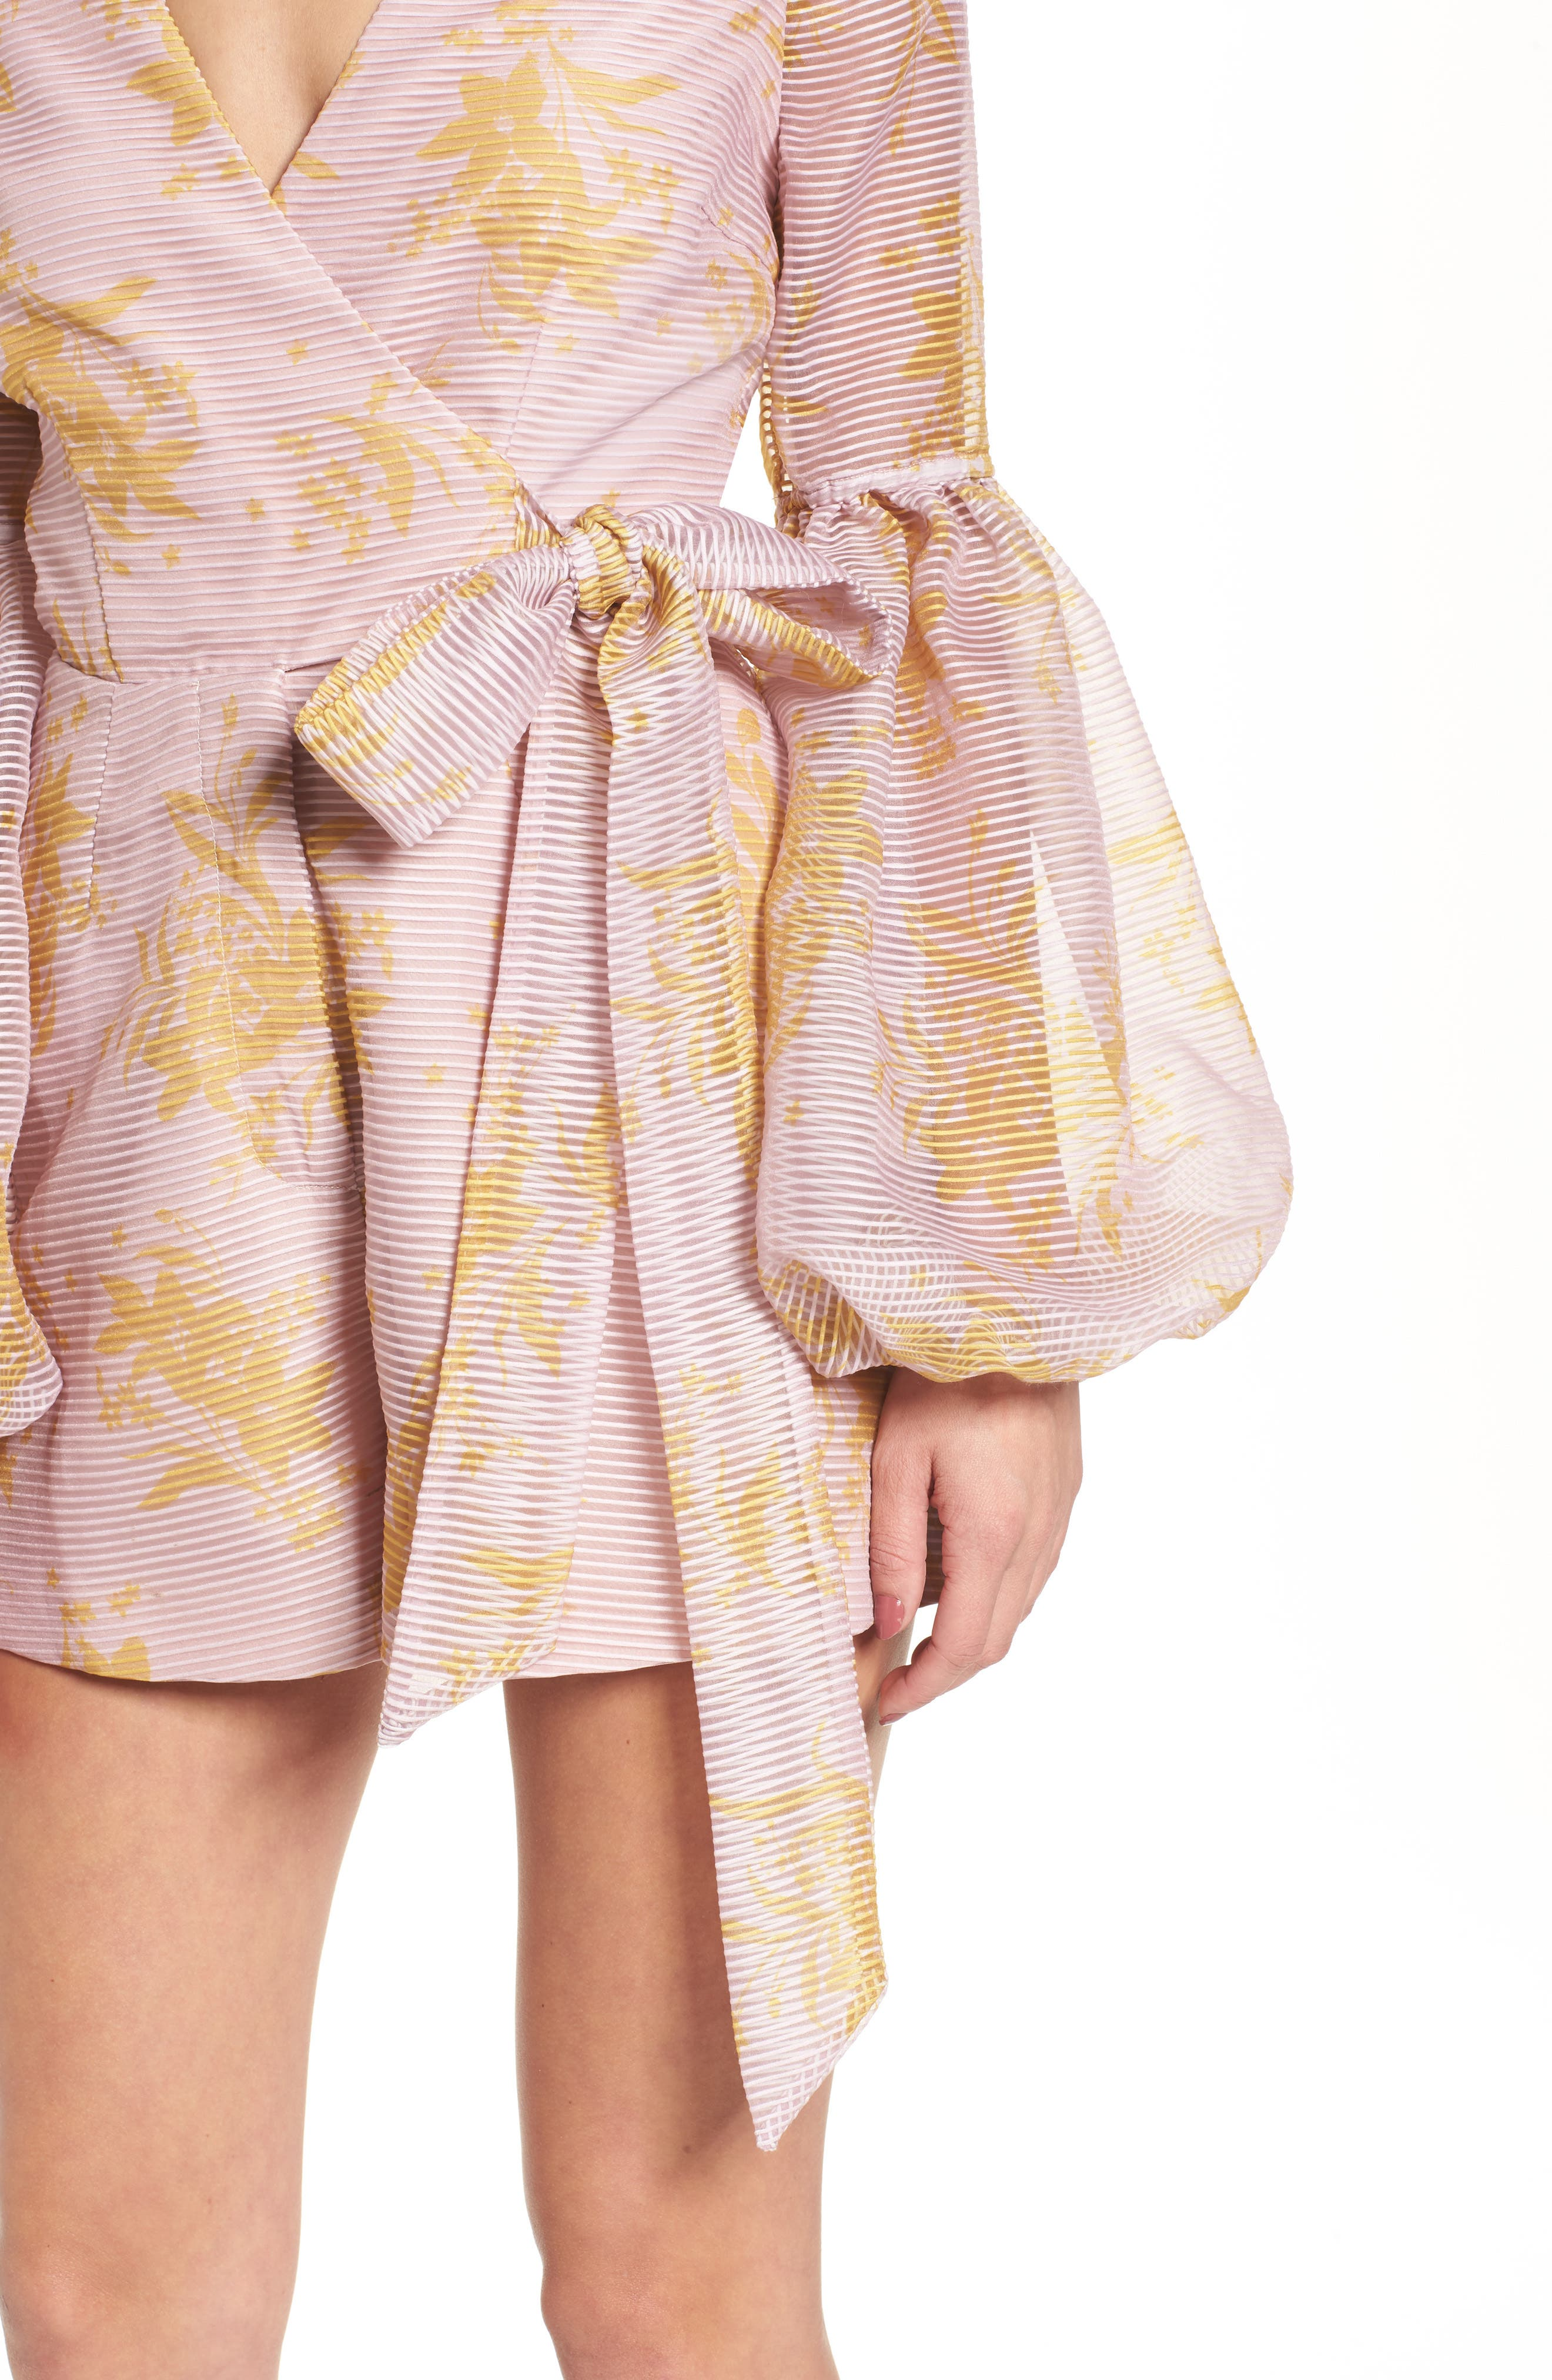 Stand Tall Romper,                             Alternate thumbnail 4, color,                             Blush Stencil Floral